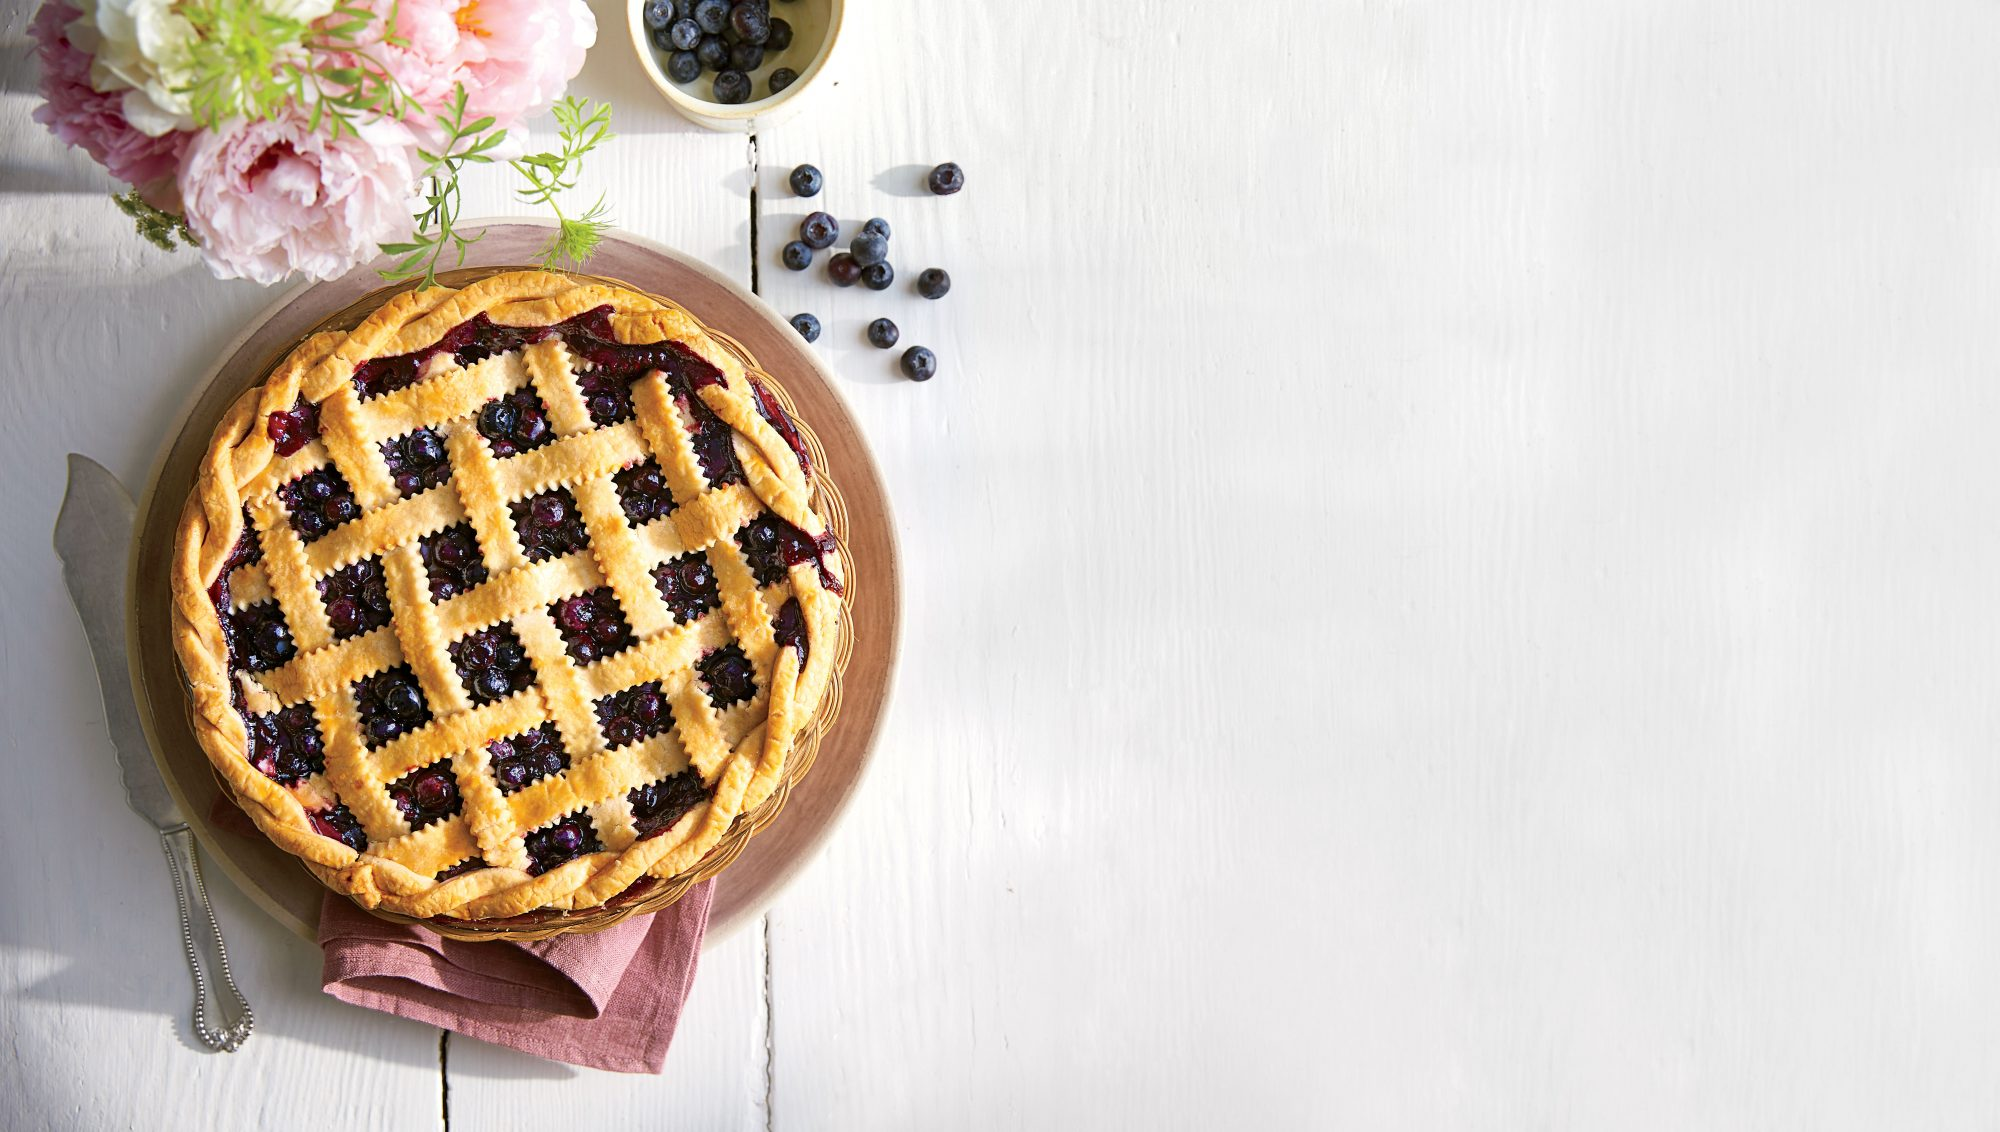 Pie Tips with Blueberry Pie